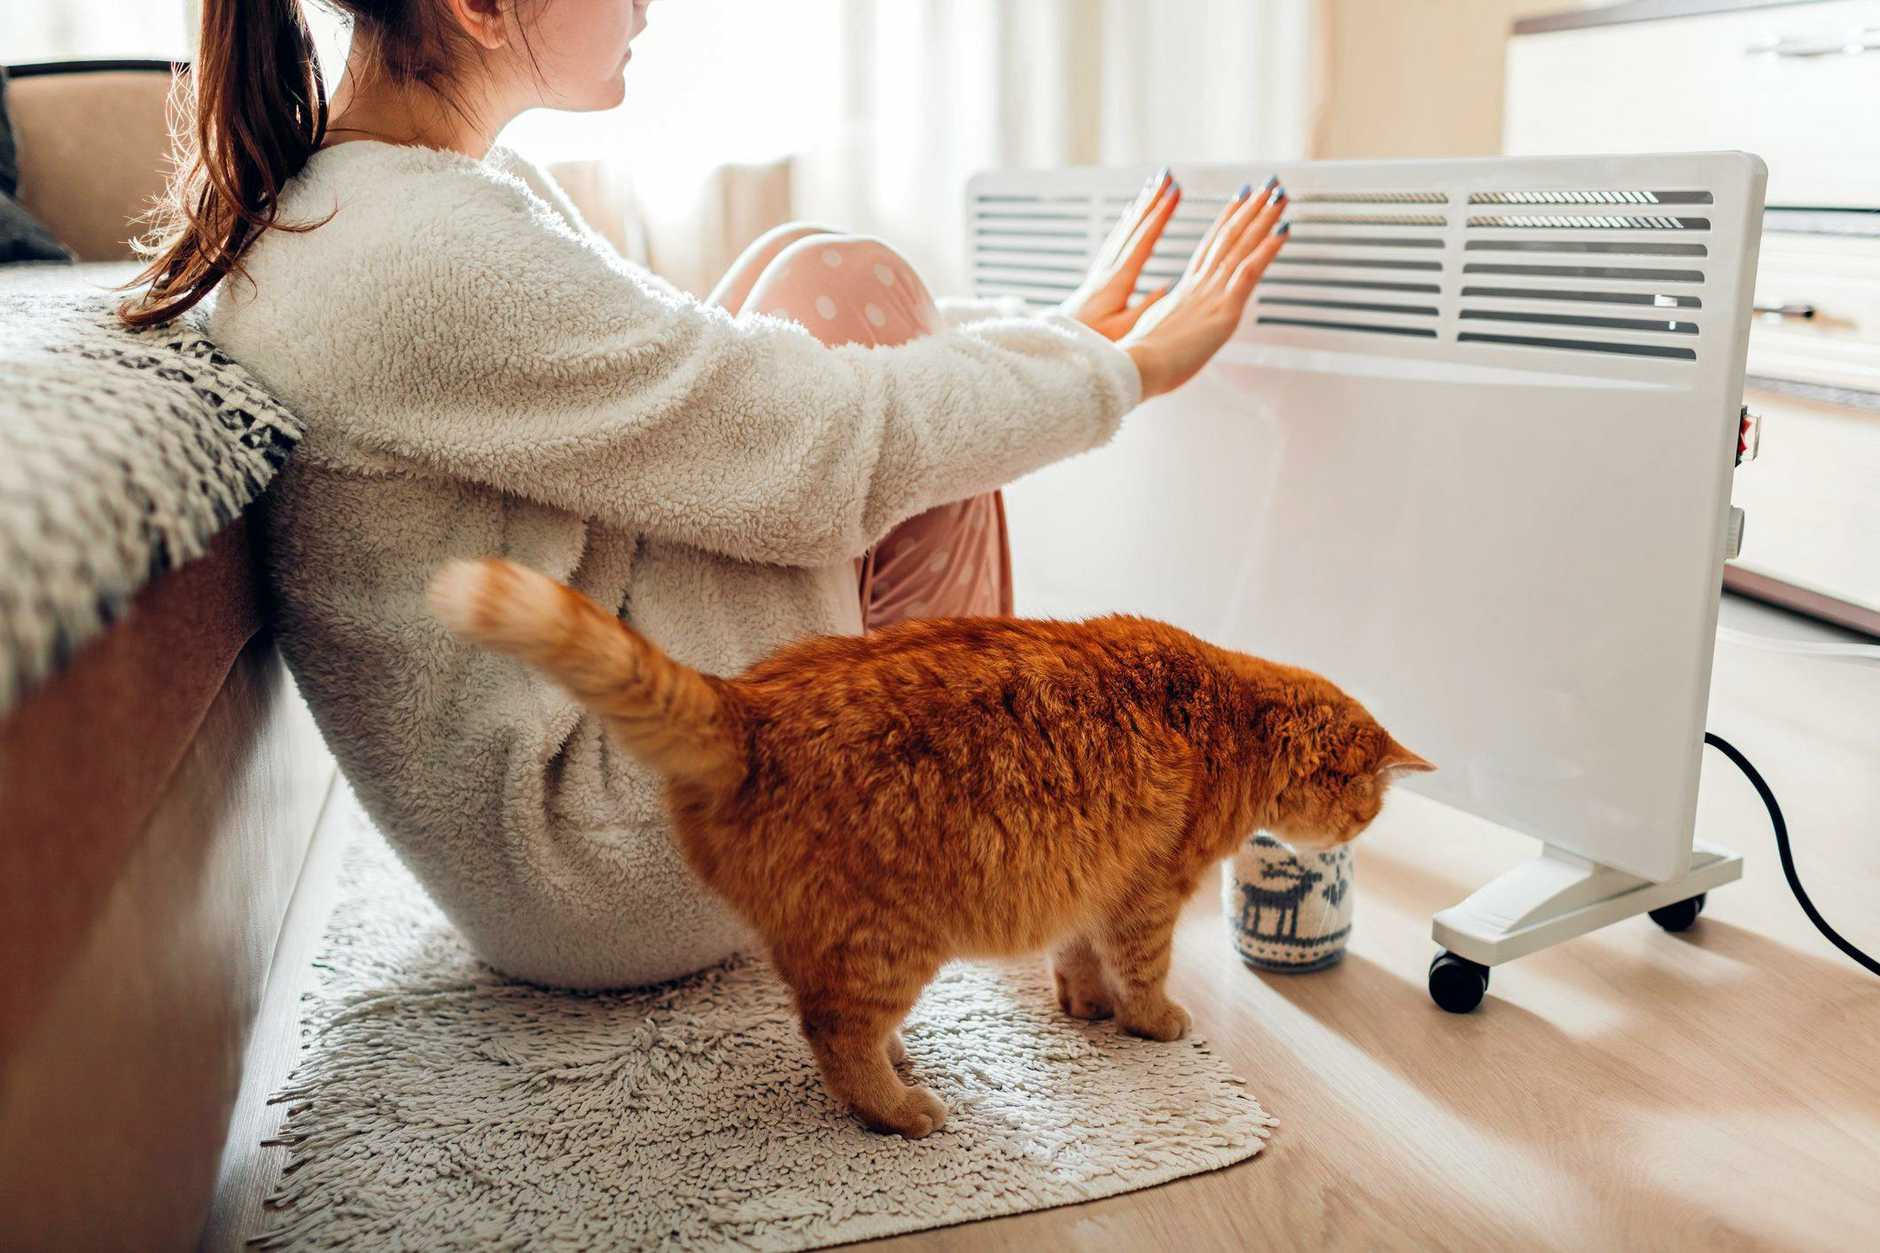 The RACQ urges Queenslanders to ensure heaters are in good working order before switching them on this winter.